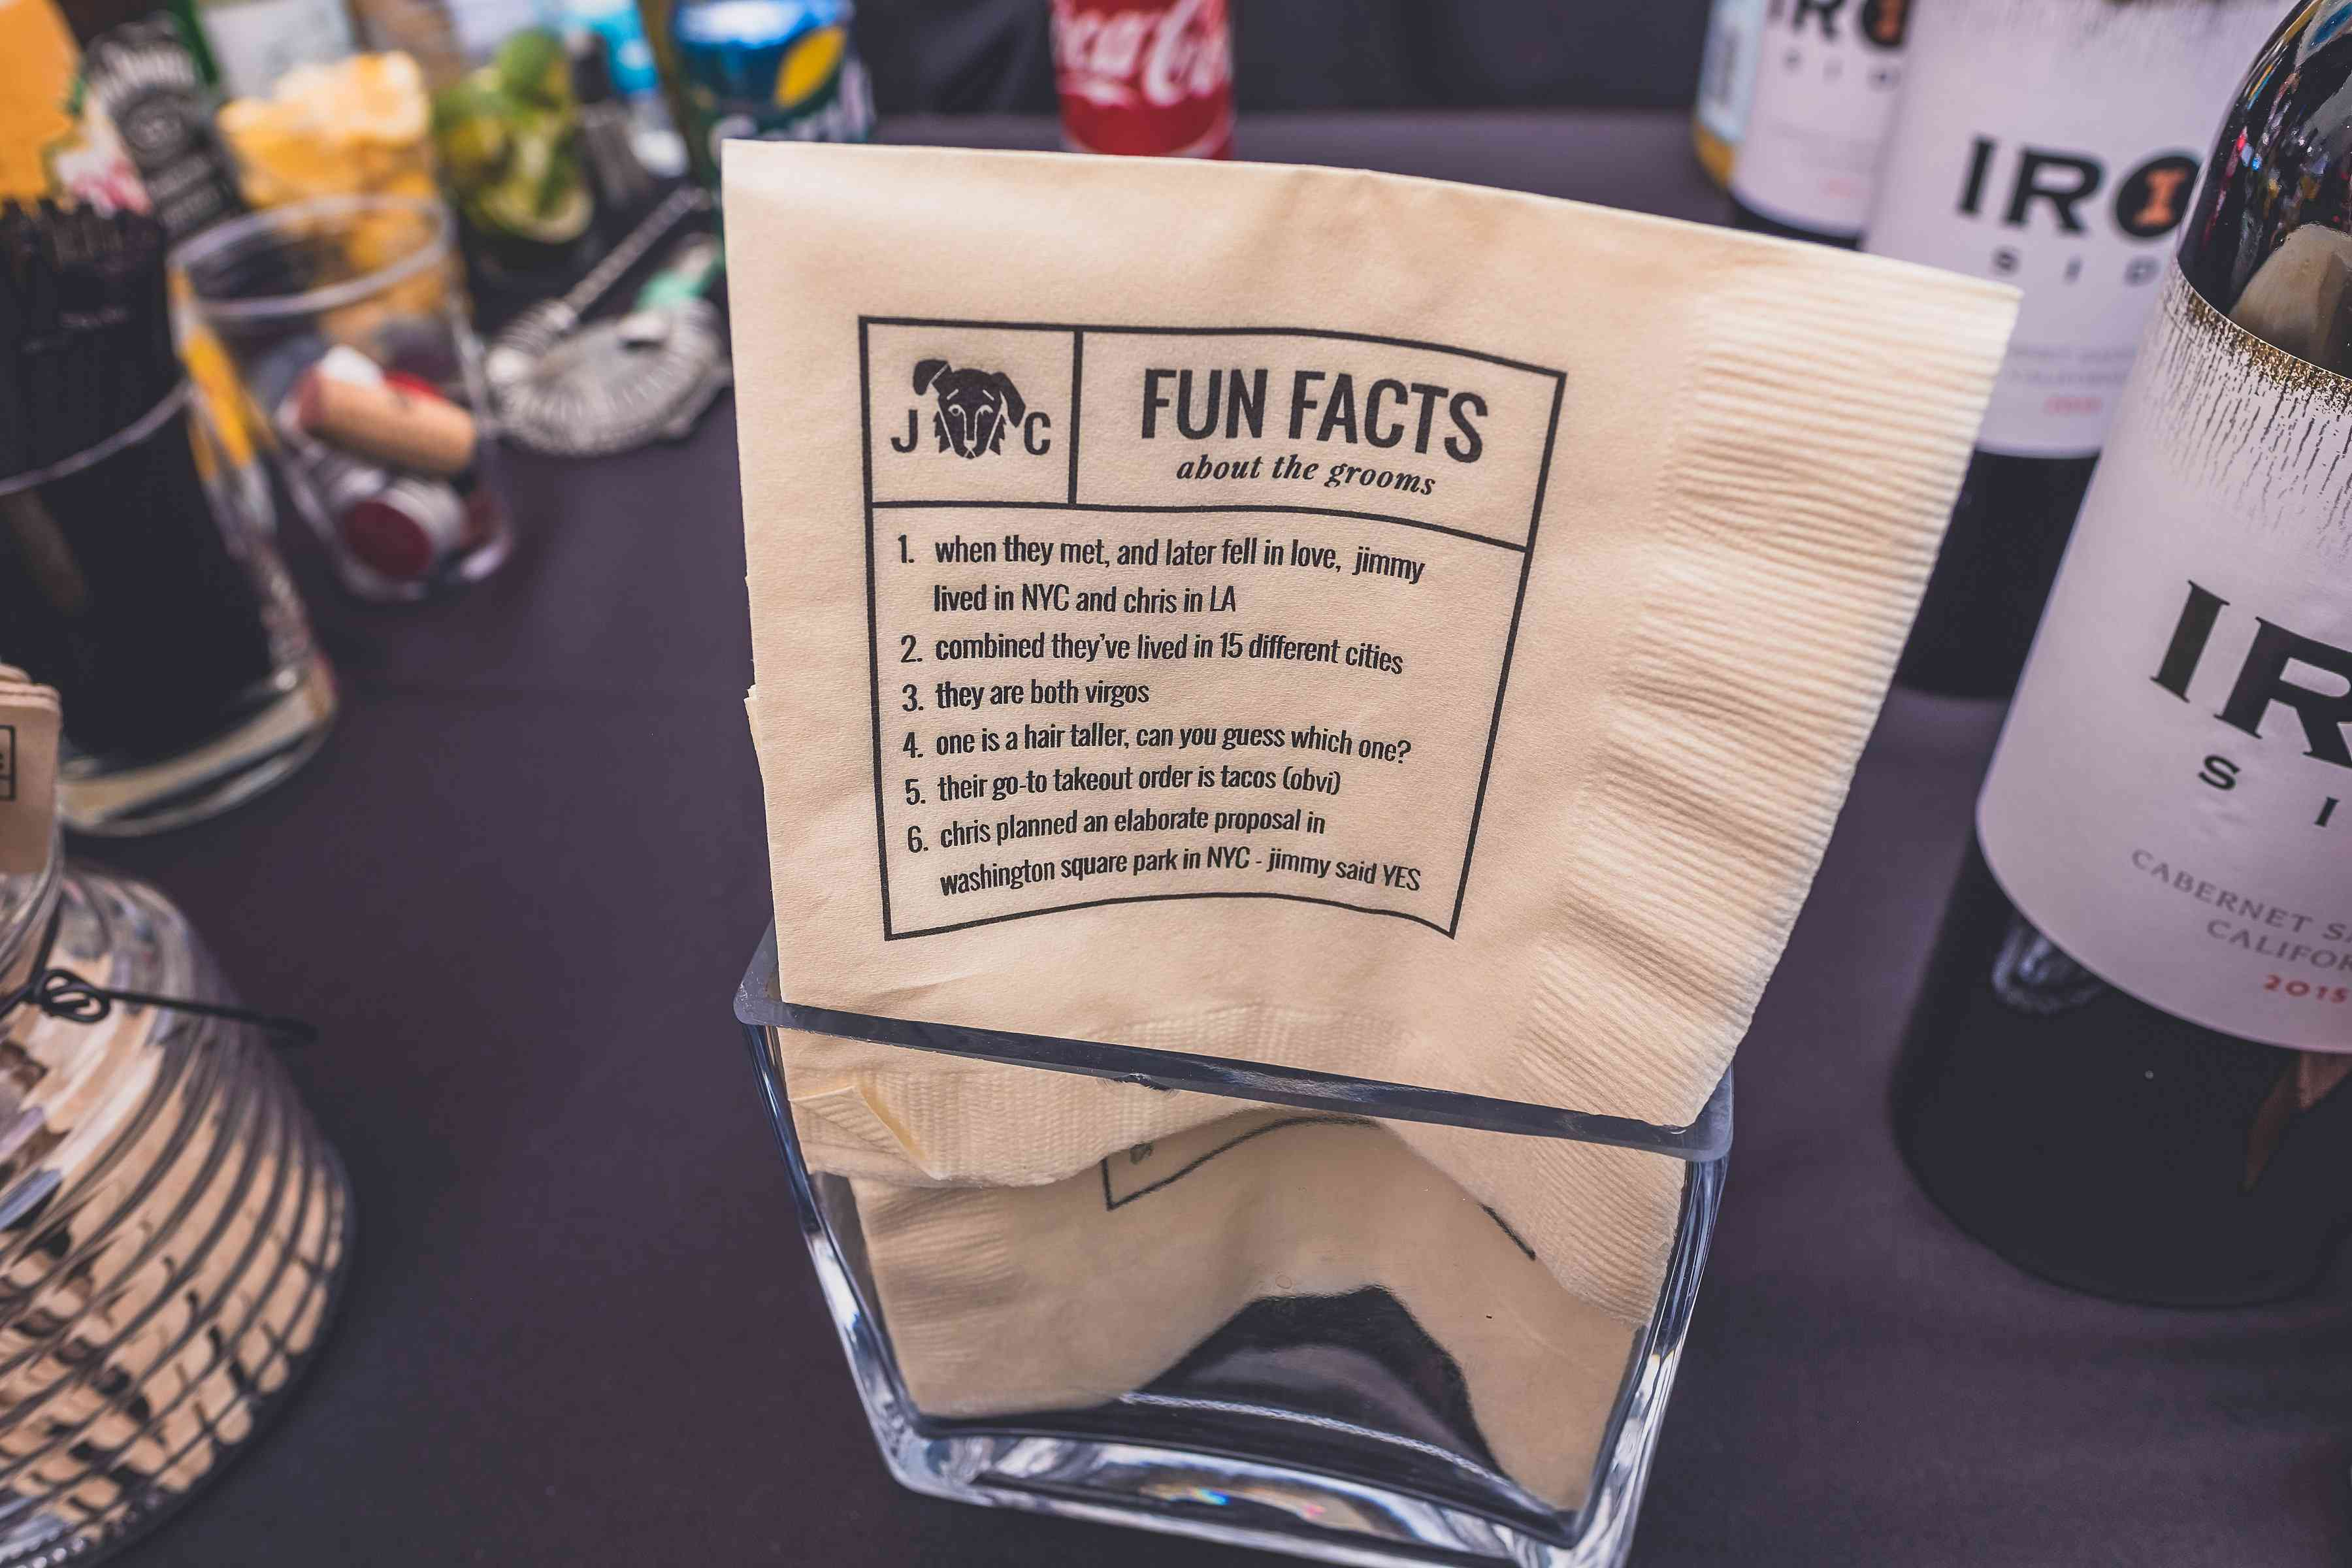 Napkin with fun facts